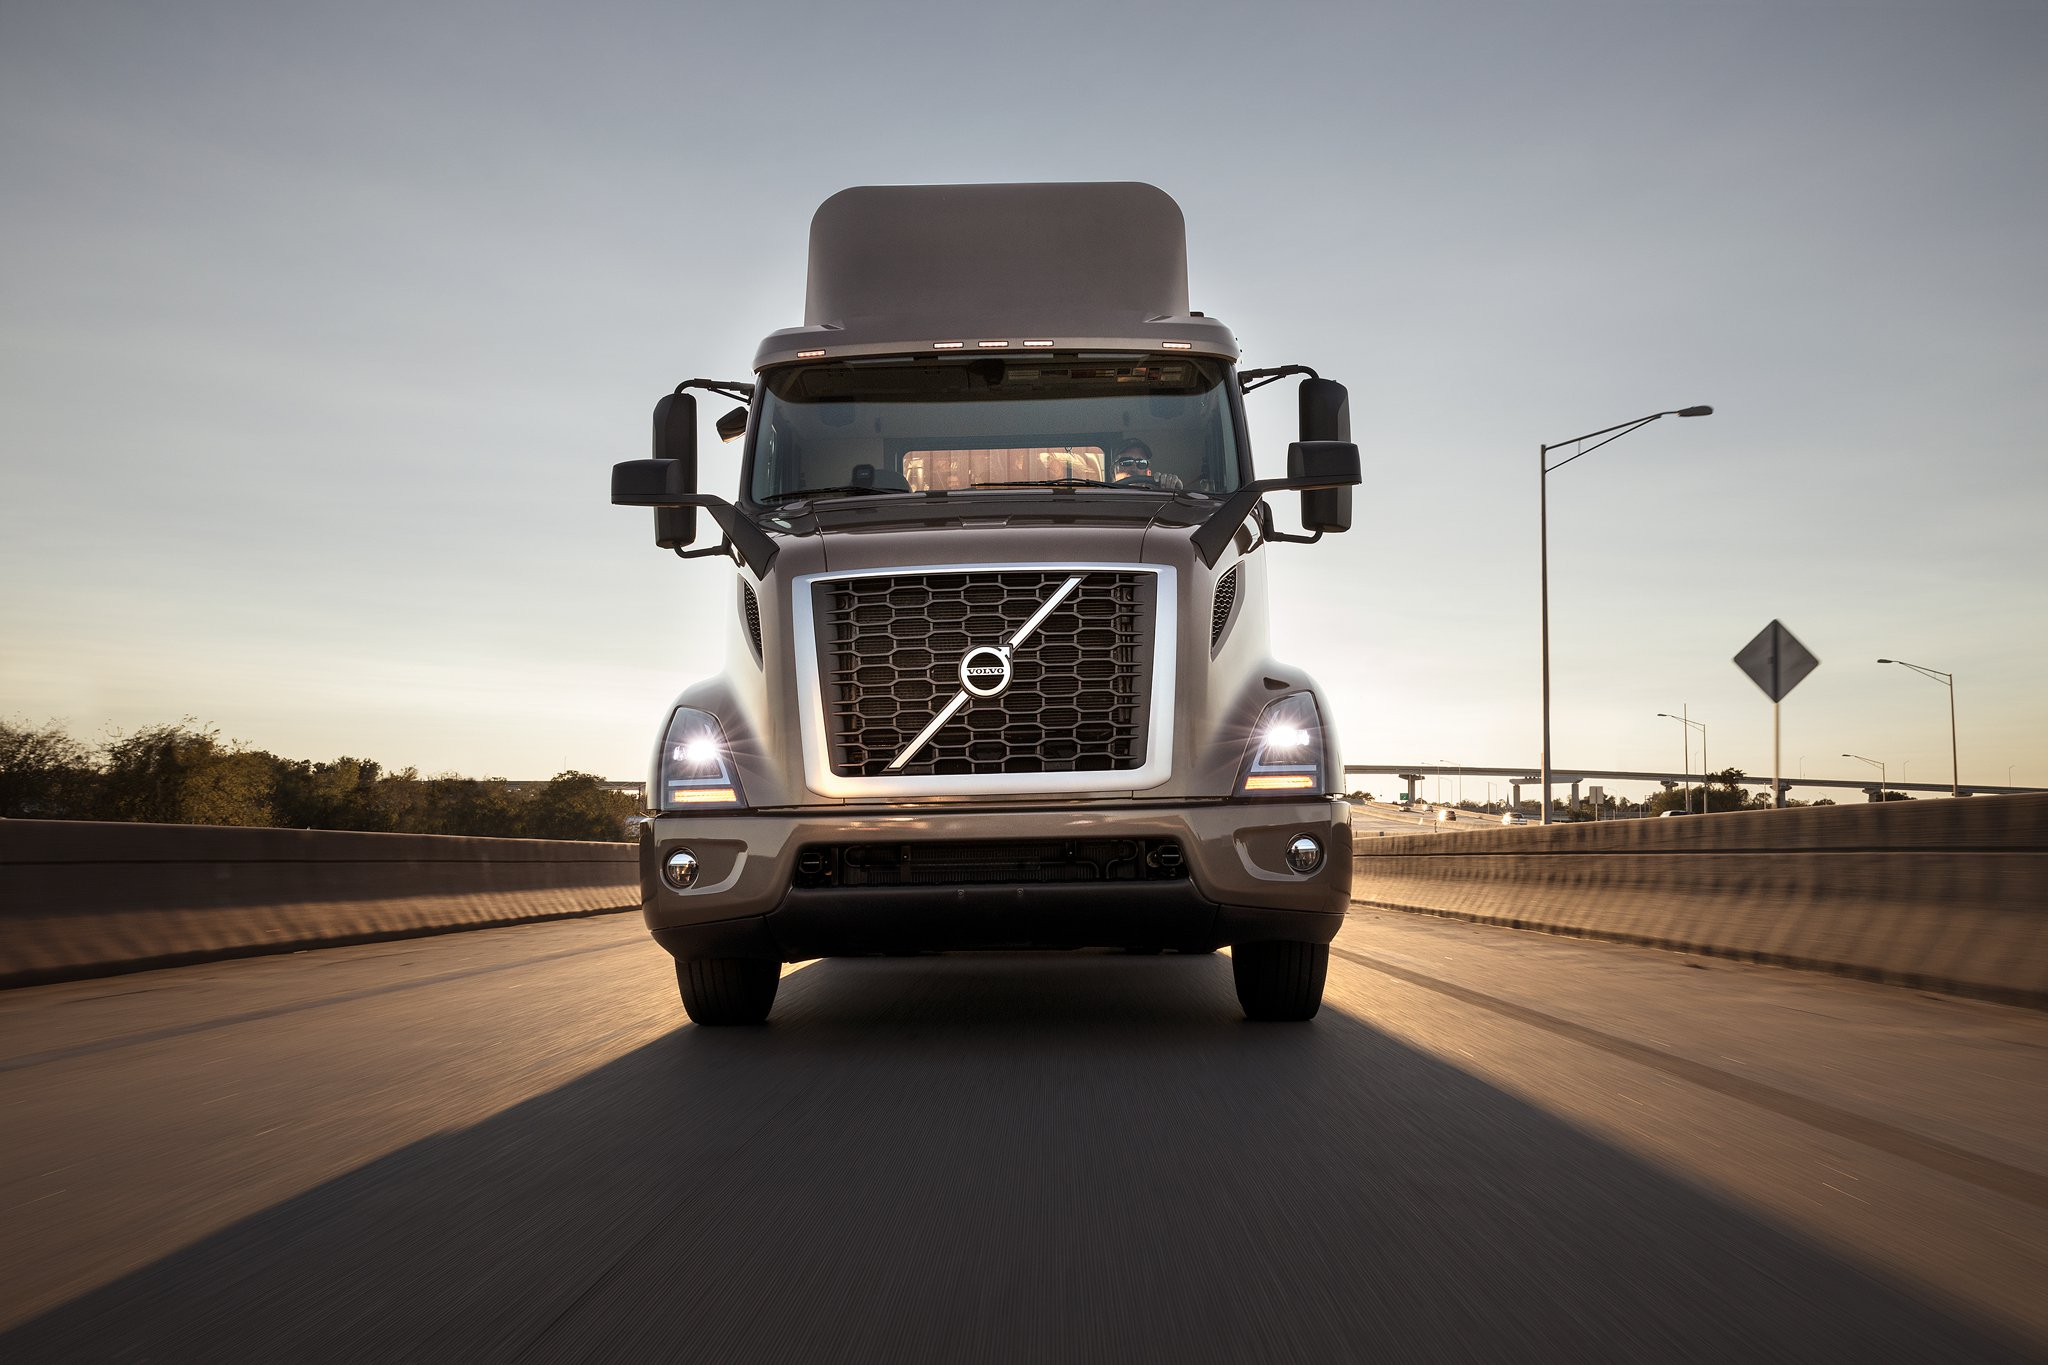 This truck will reestablish Volvo's leadership in the market